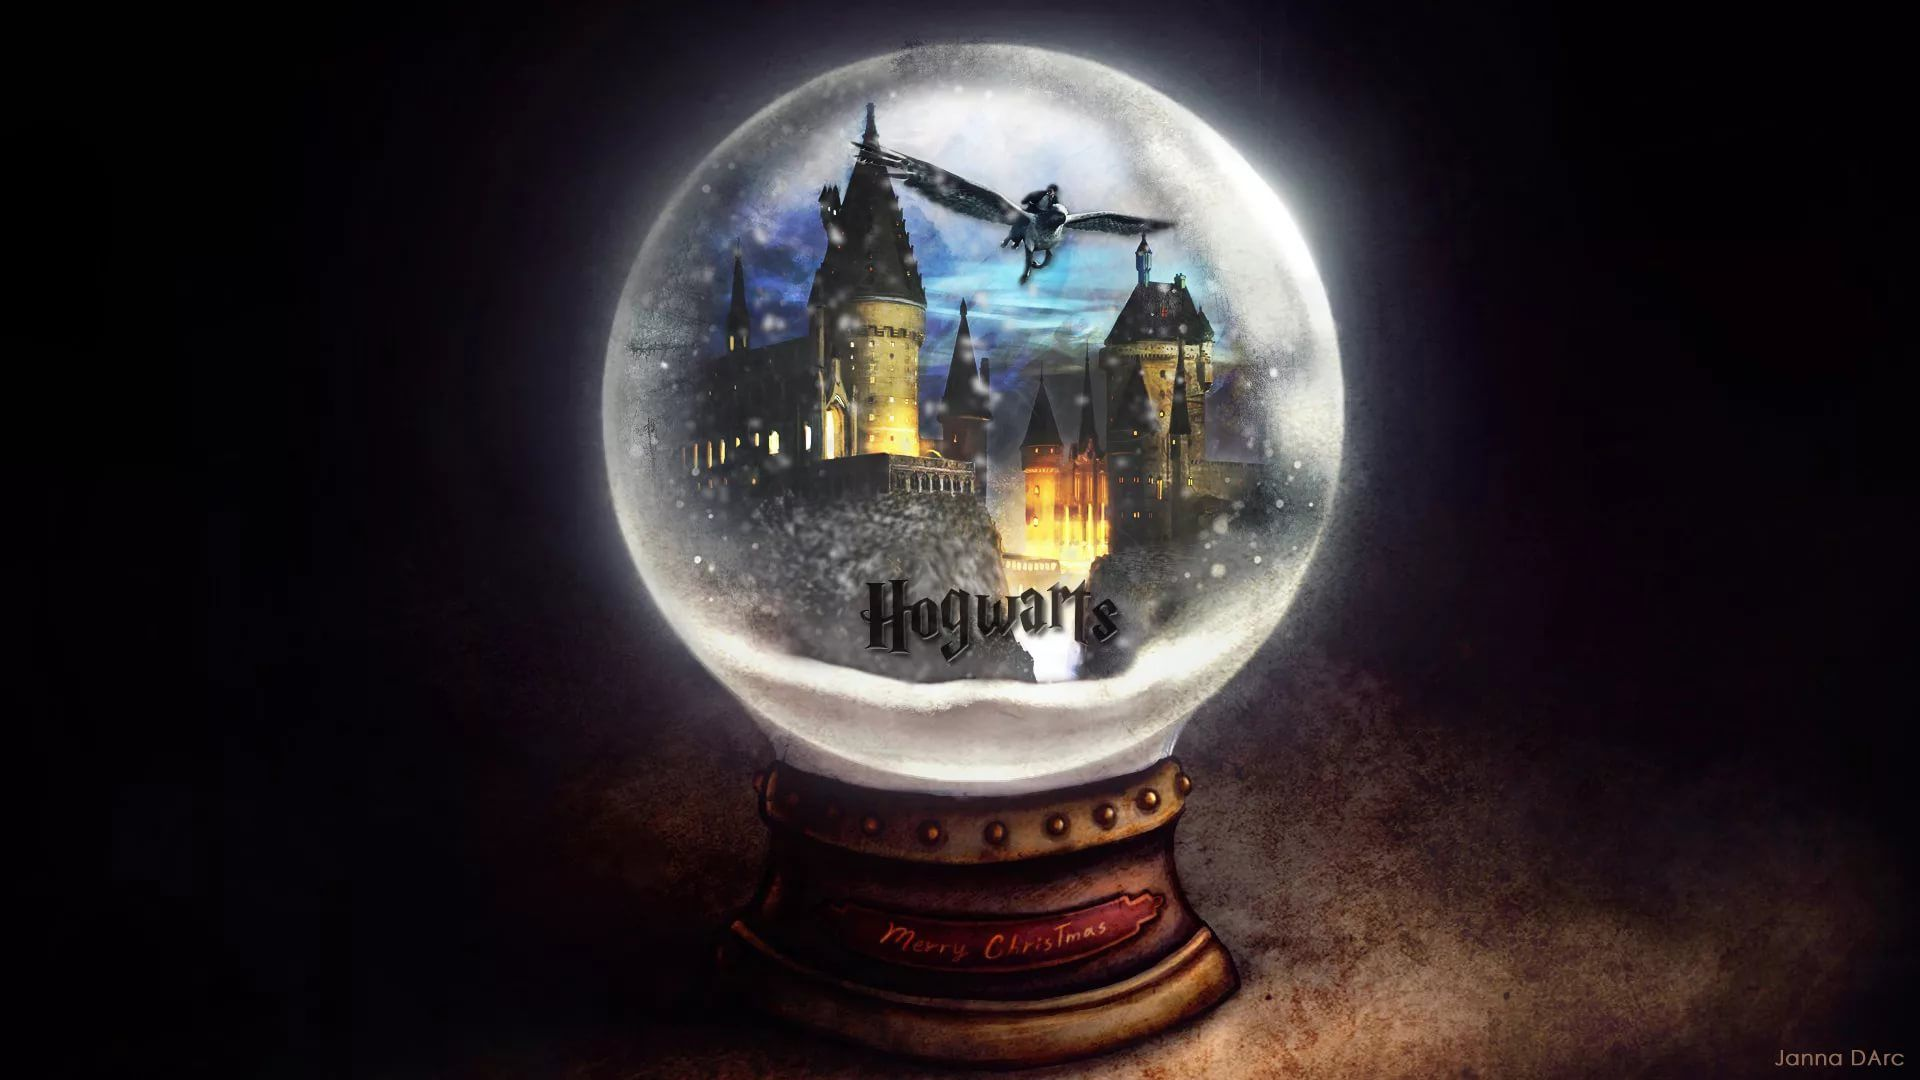 Harry Potter hd wallpaper 1080p for pc